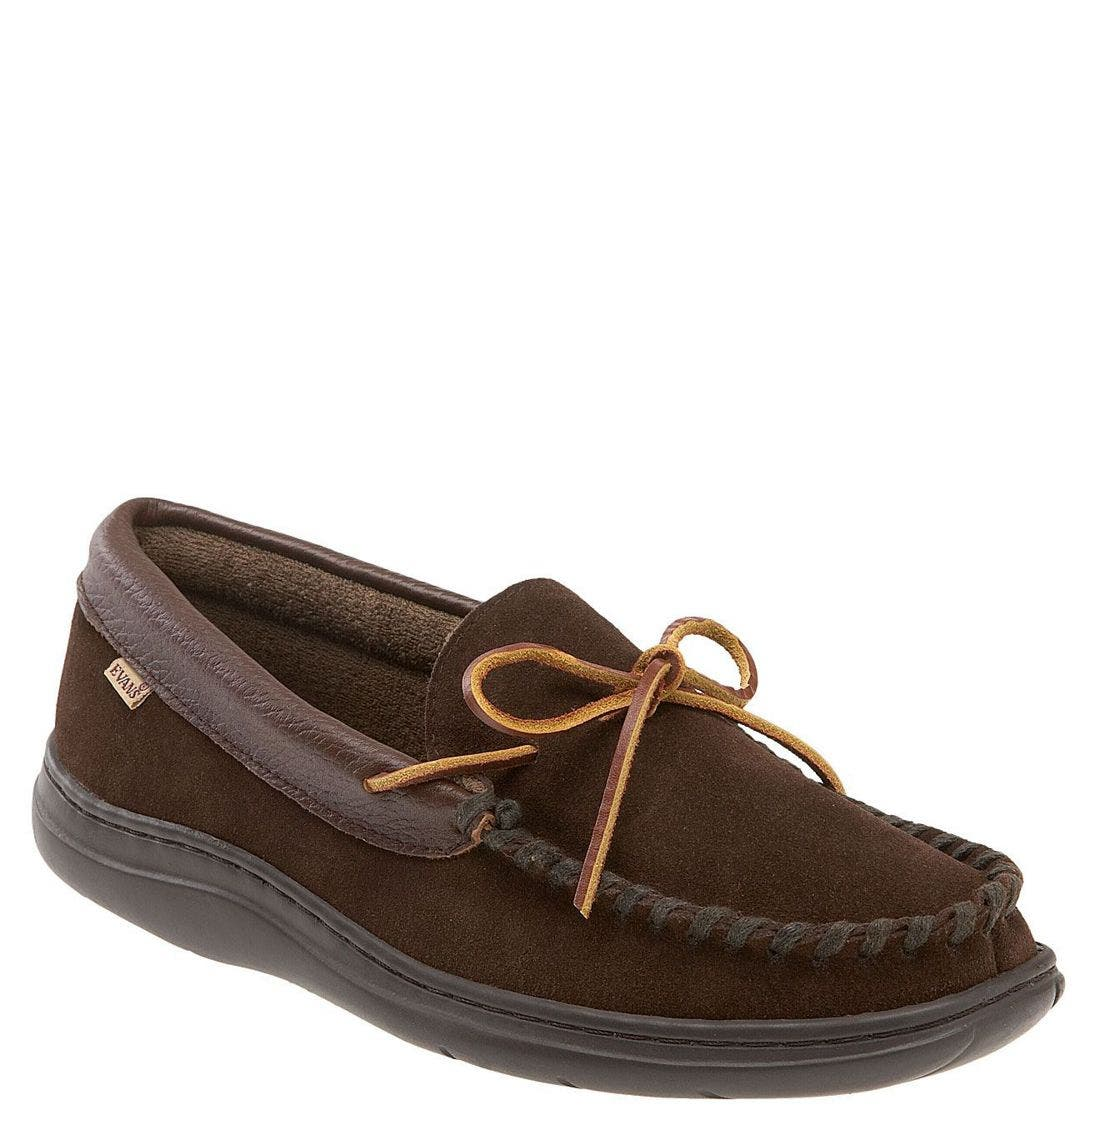 'Atlin' Moccasin,                         Main,                         color, Chocolate/ Terry